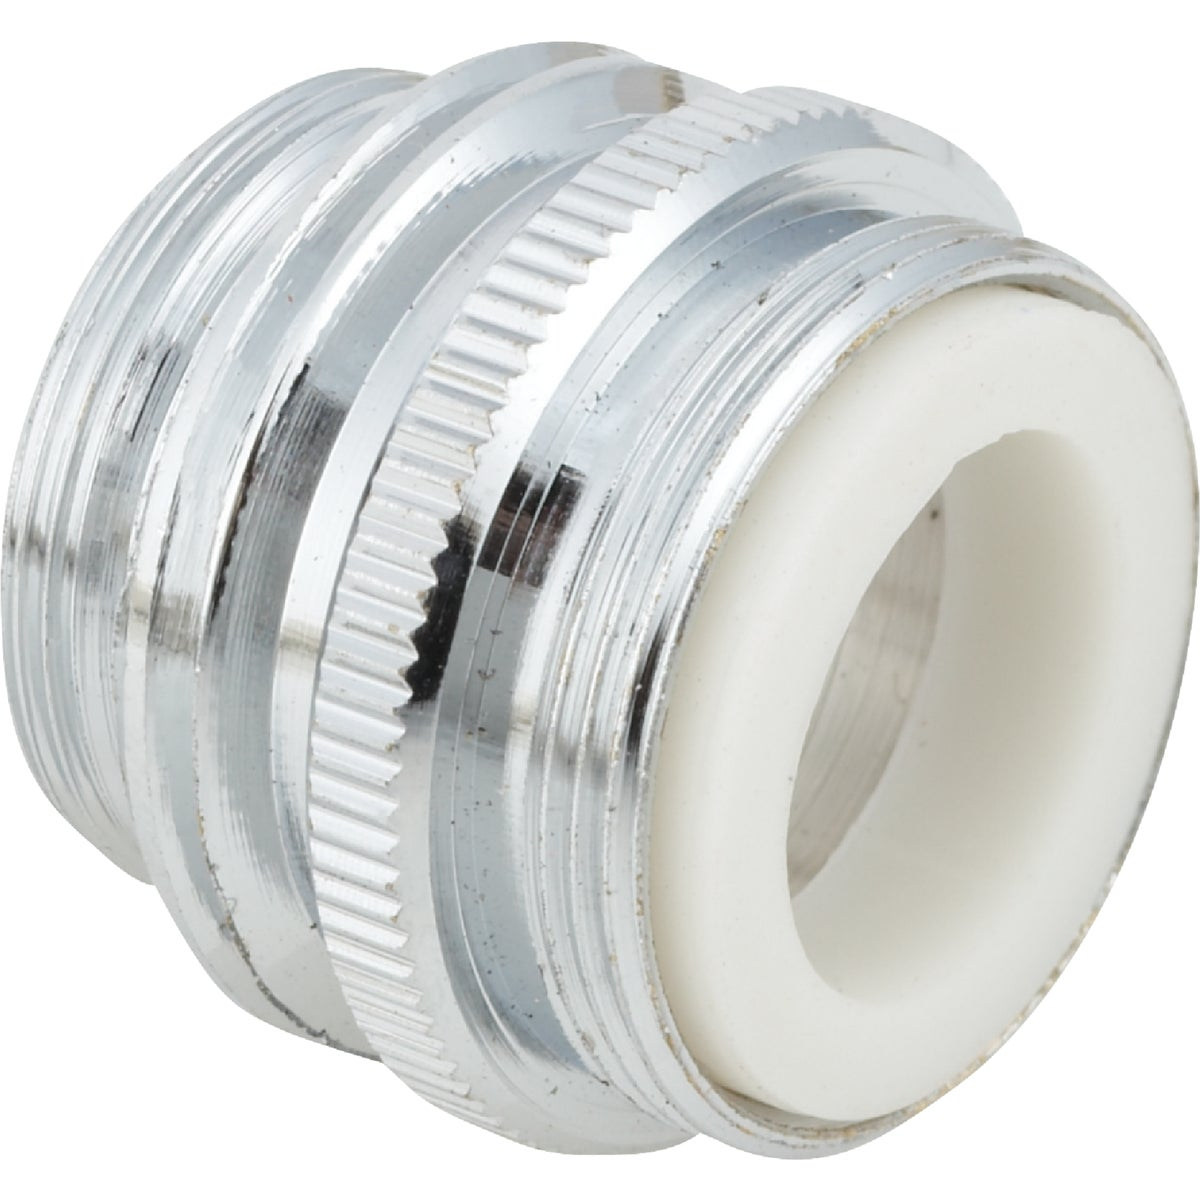 DUAL THREADED ADAPTER - W-1134LF by Do it Best